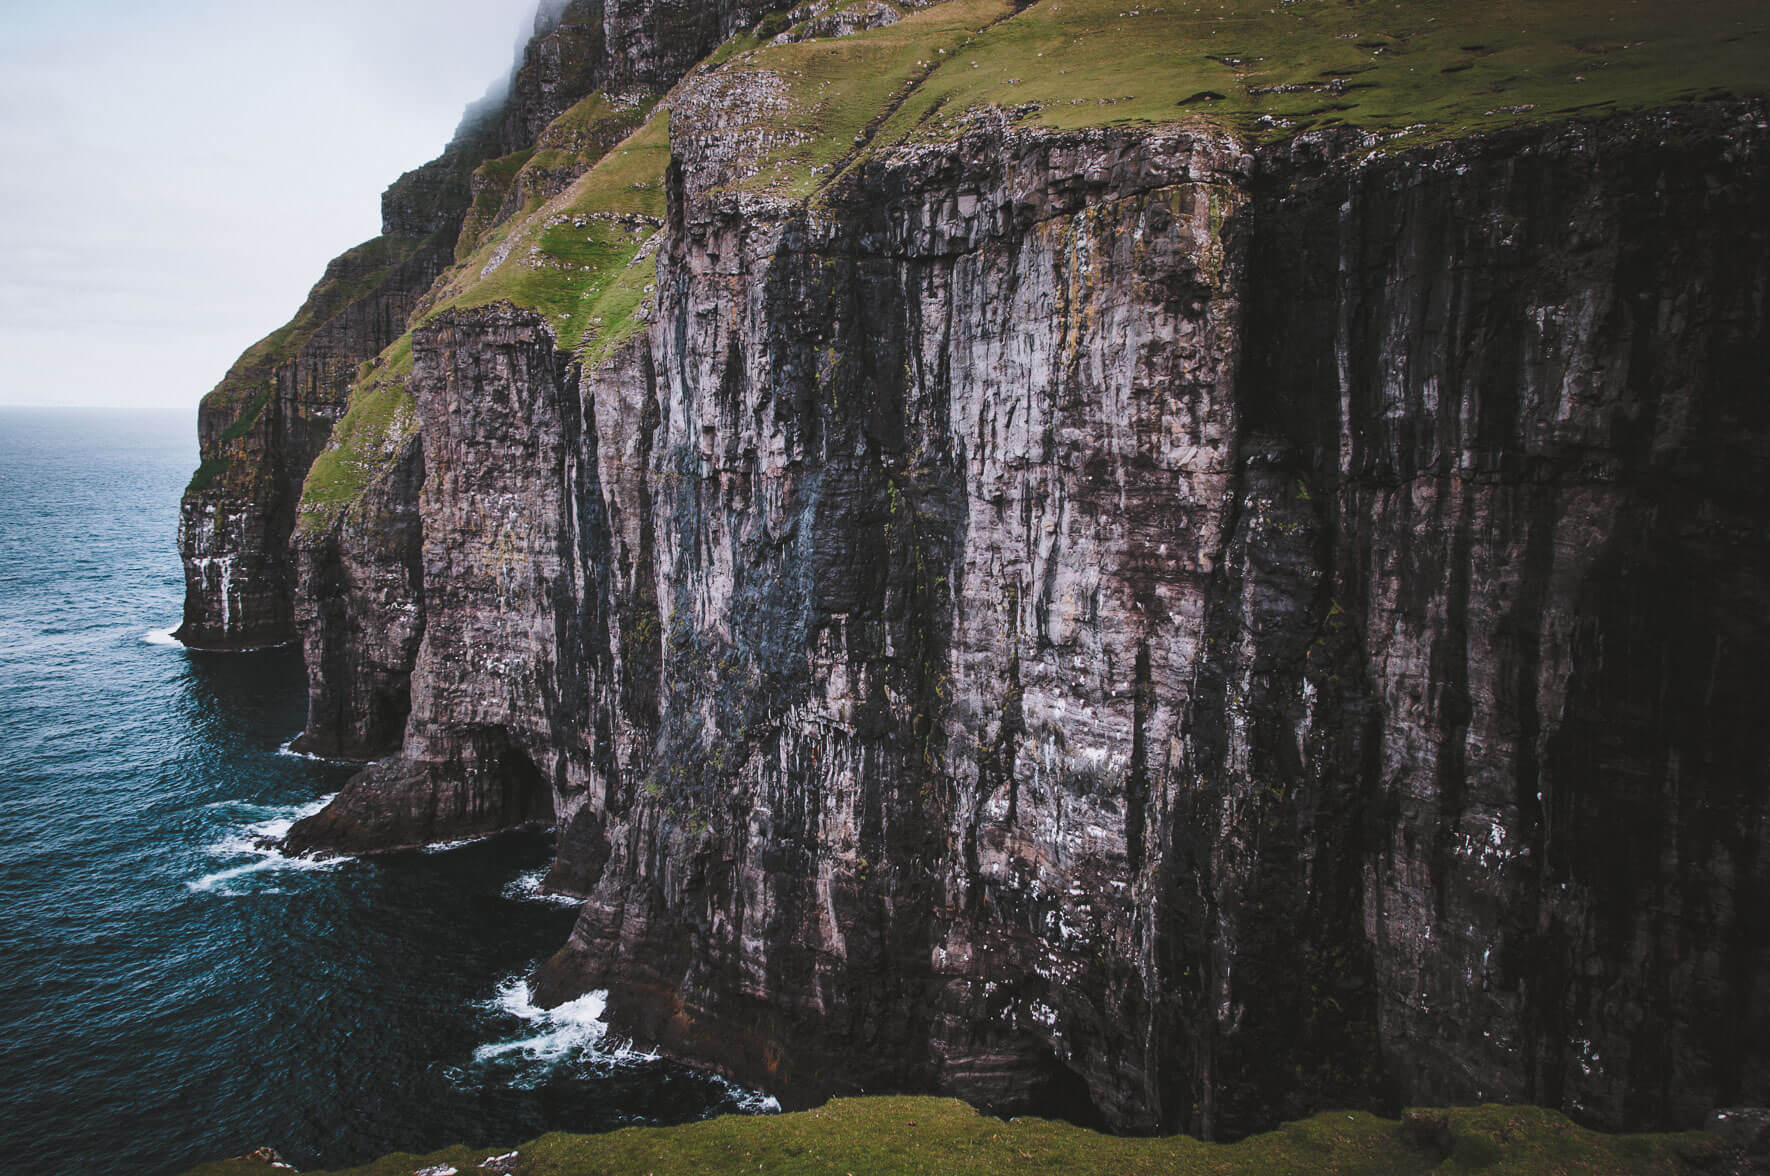 Coastline and cliffs of Suðuroy on the Faroe Islands